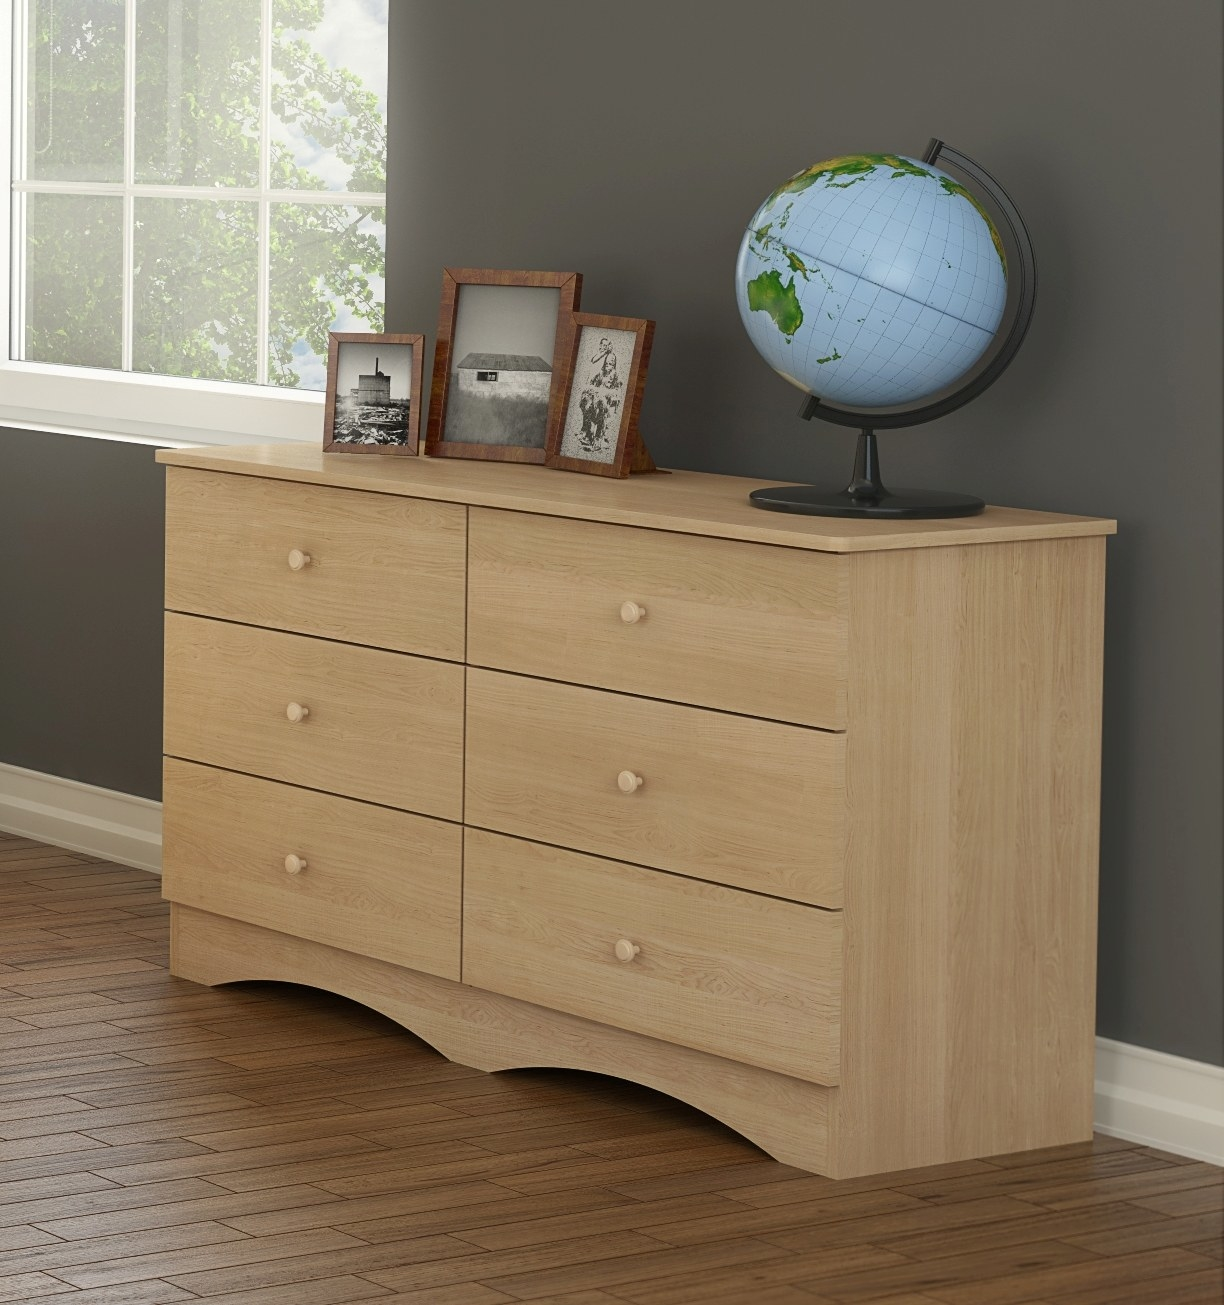 """Promising review: """"Had a unique space requirement and this met it. Dresser is for my 89-year-old mother. It has easy drawers for her to open, they roll right out. Since the price was low, I was afraid it would be cheaply made but it wasn't."""" —LovingSonandDaughterPrice: $214.59"""